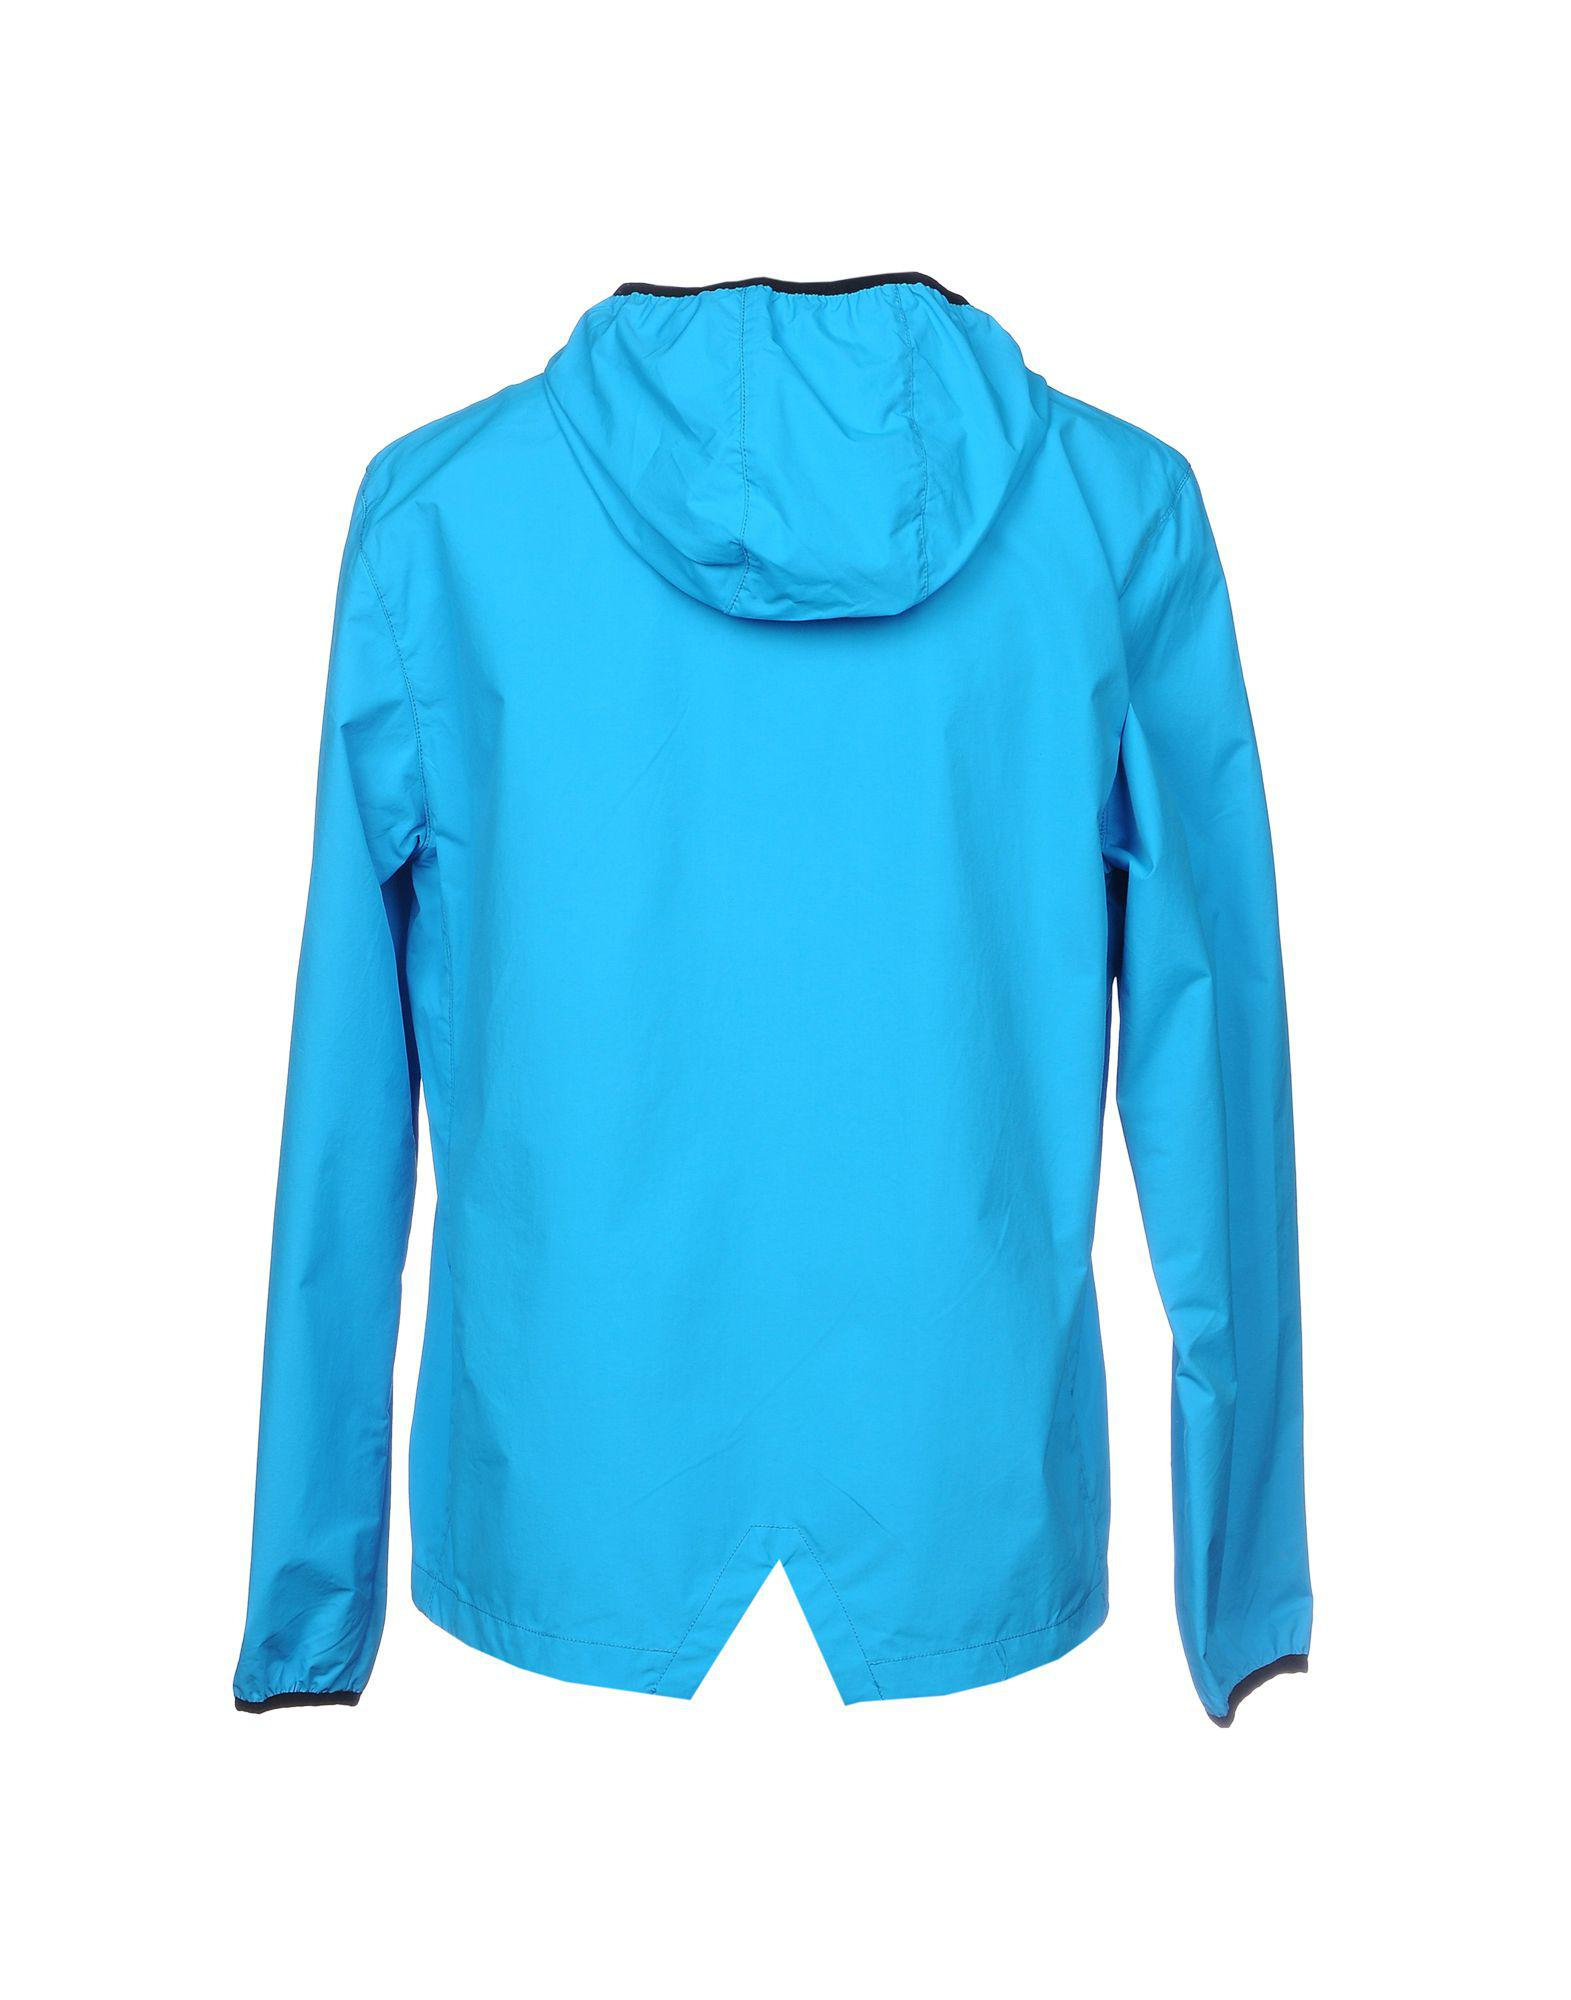 Yuko Synthetic Jacket in Azure (Blue) for Men